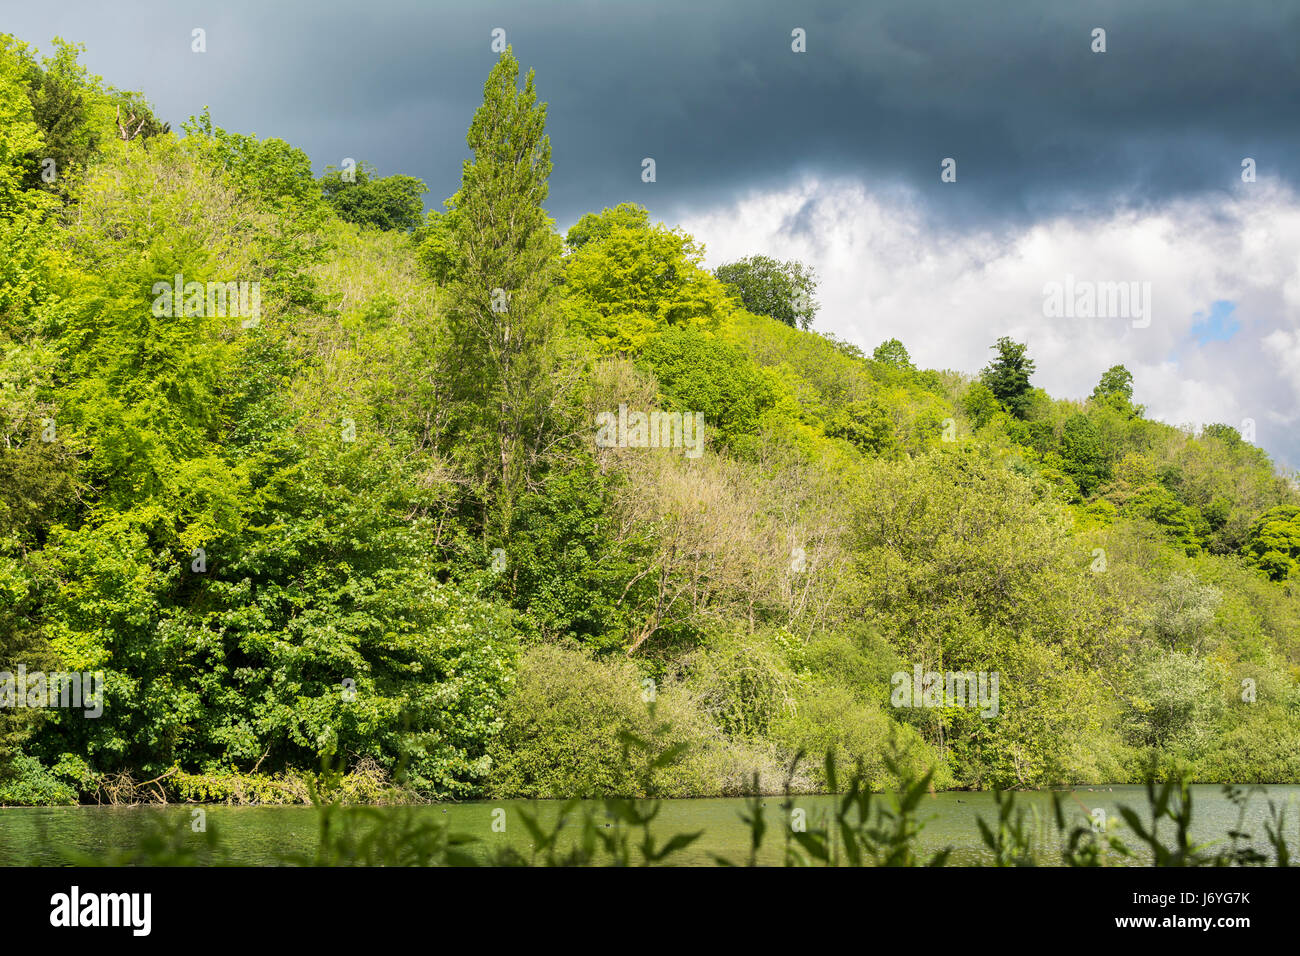 Storm clouds approaching over woodland on a previously bright sunny day. - Stock Image